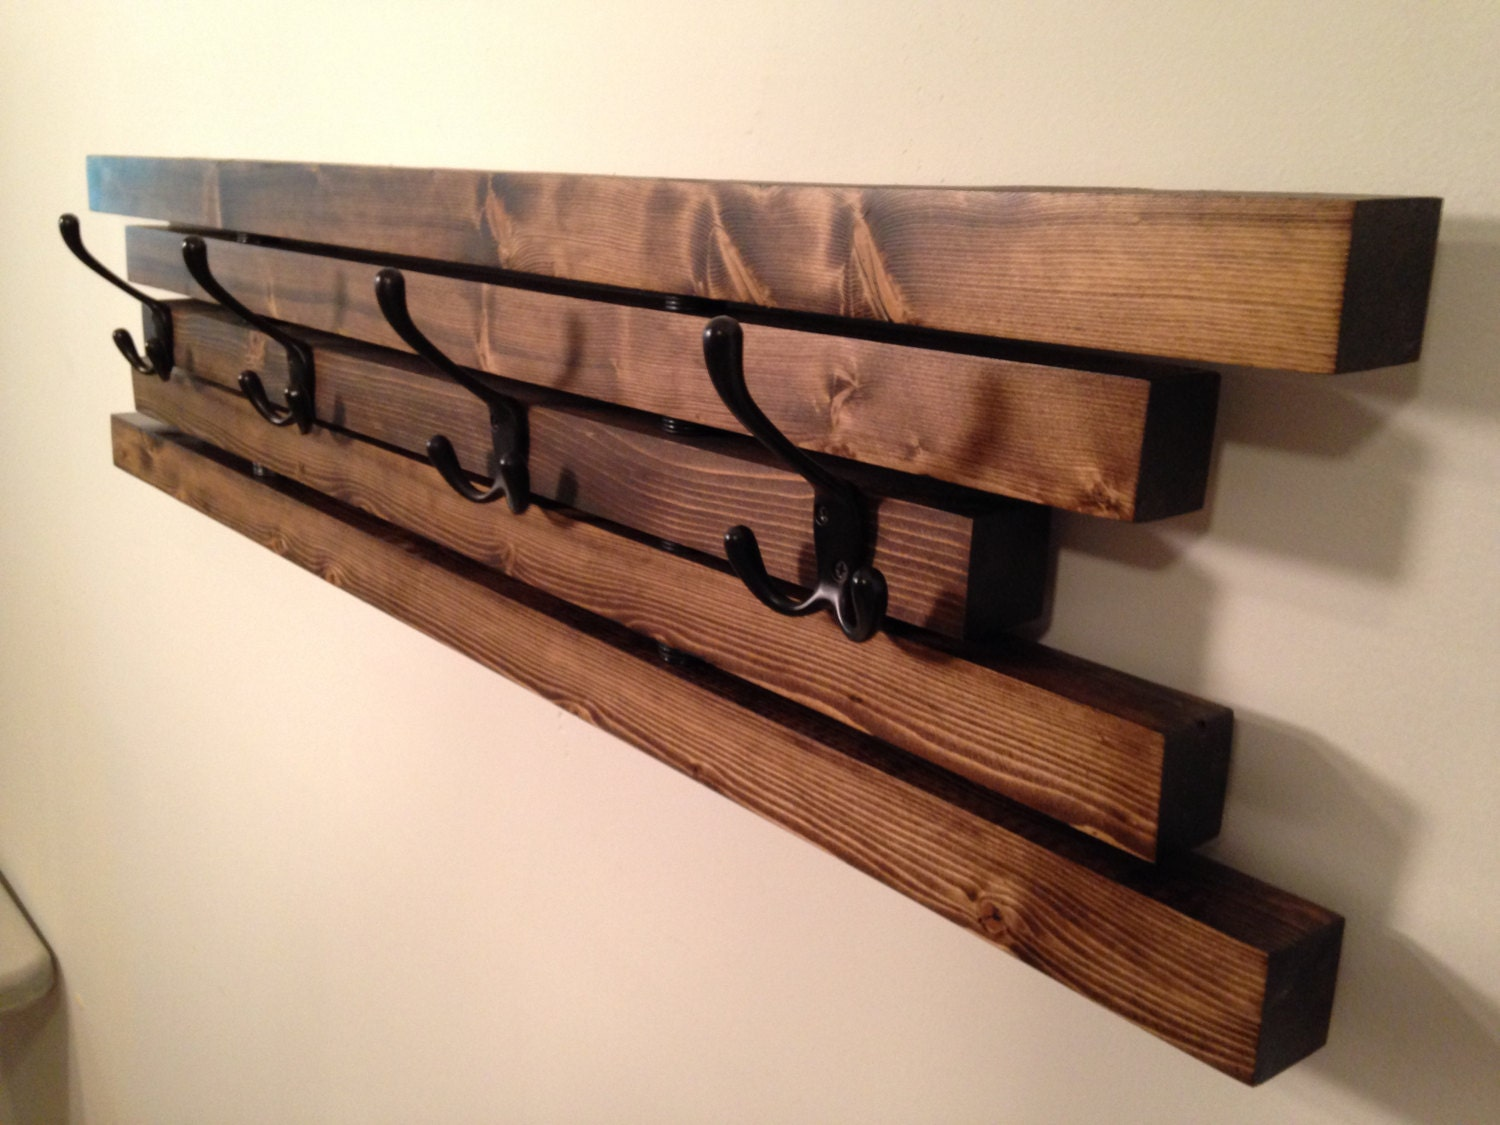 Coat Hook Rack for Wall